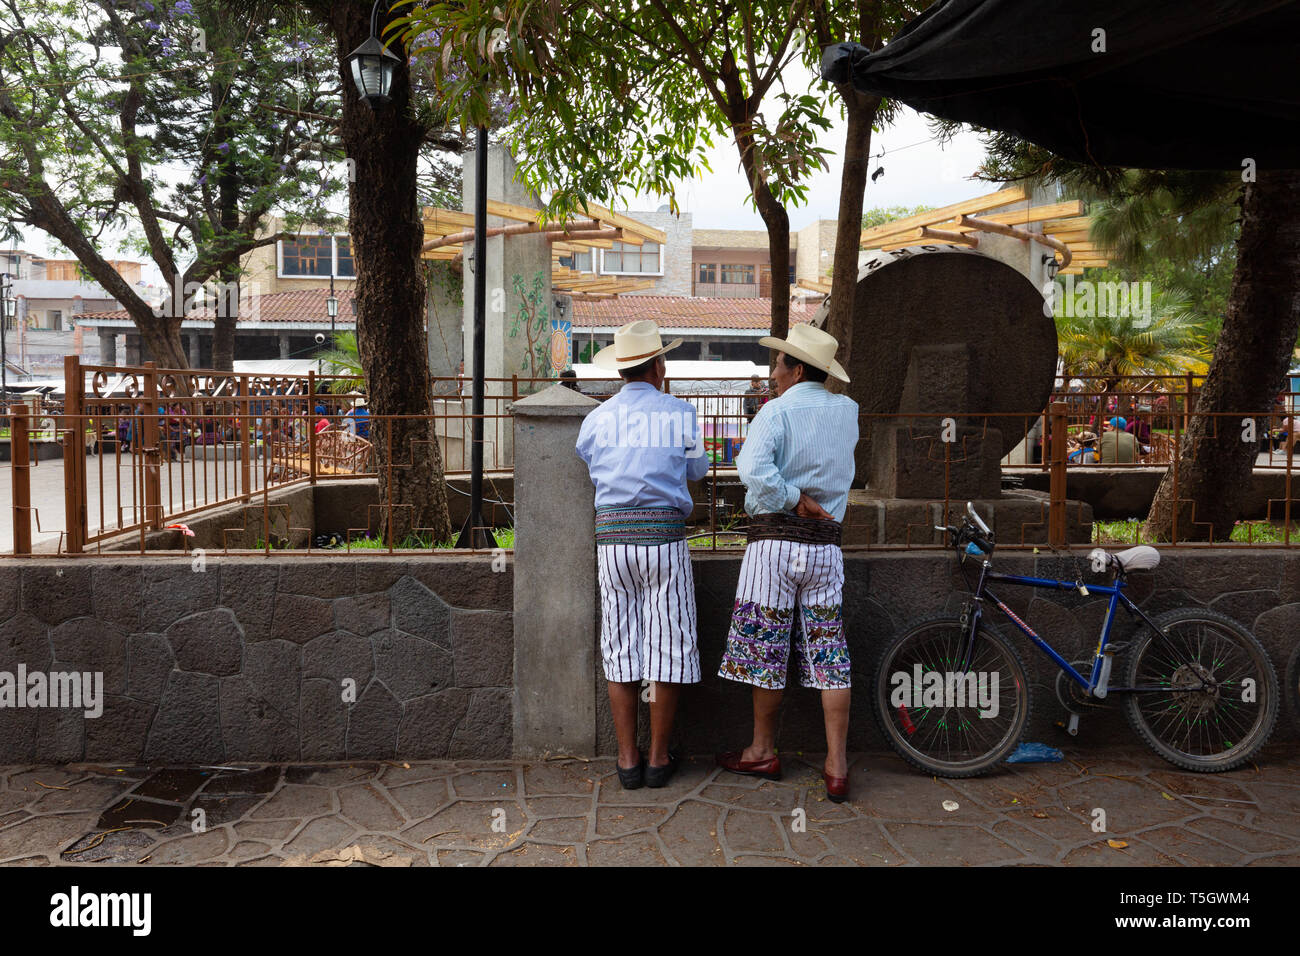 Local guatemalan men in traditional clothes talking in the street, Santiago Atitlan, Guatemala Latin America - Stock Image